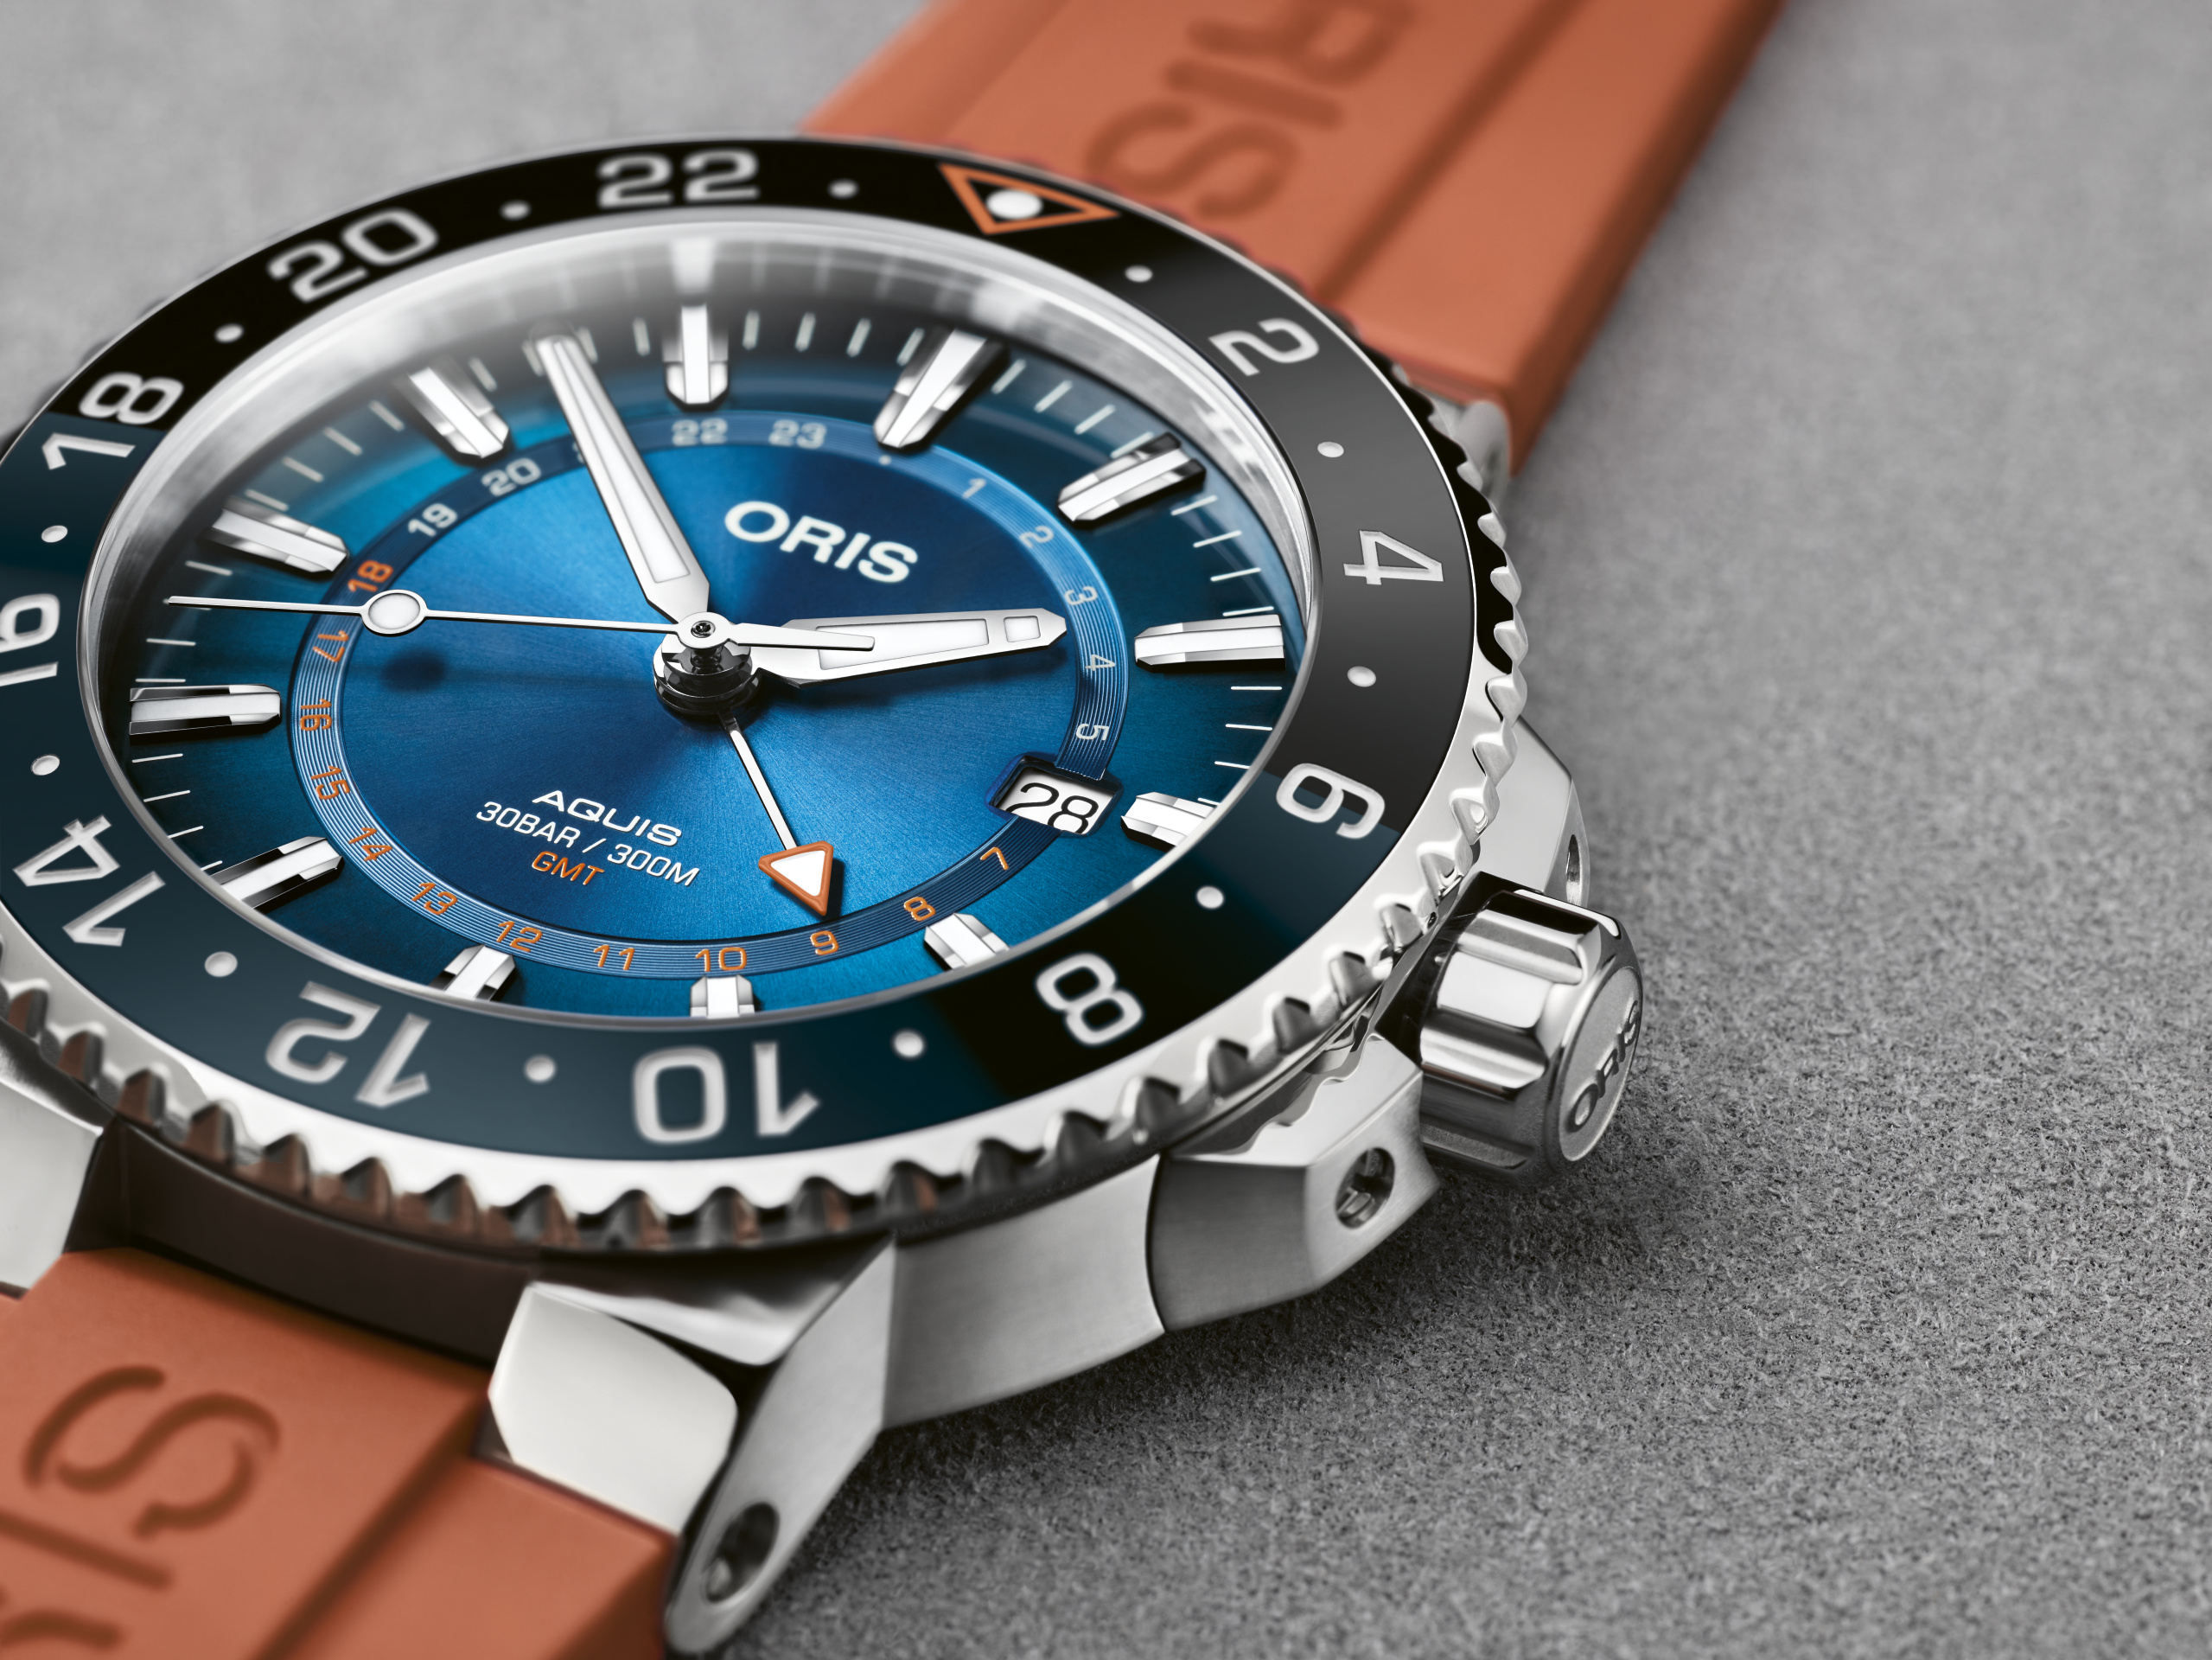 Oris Aquis Carysfort Reef Limited Edition